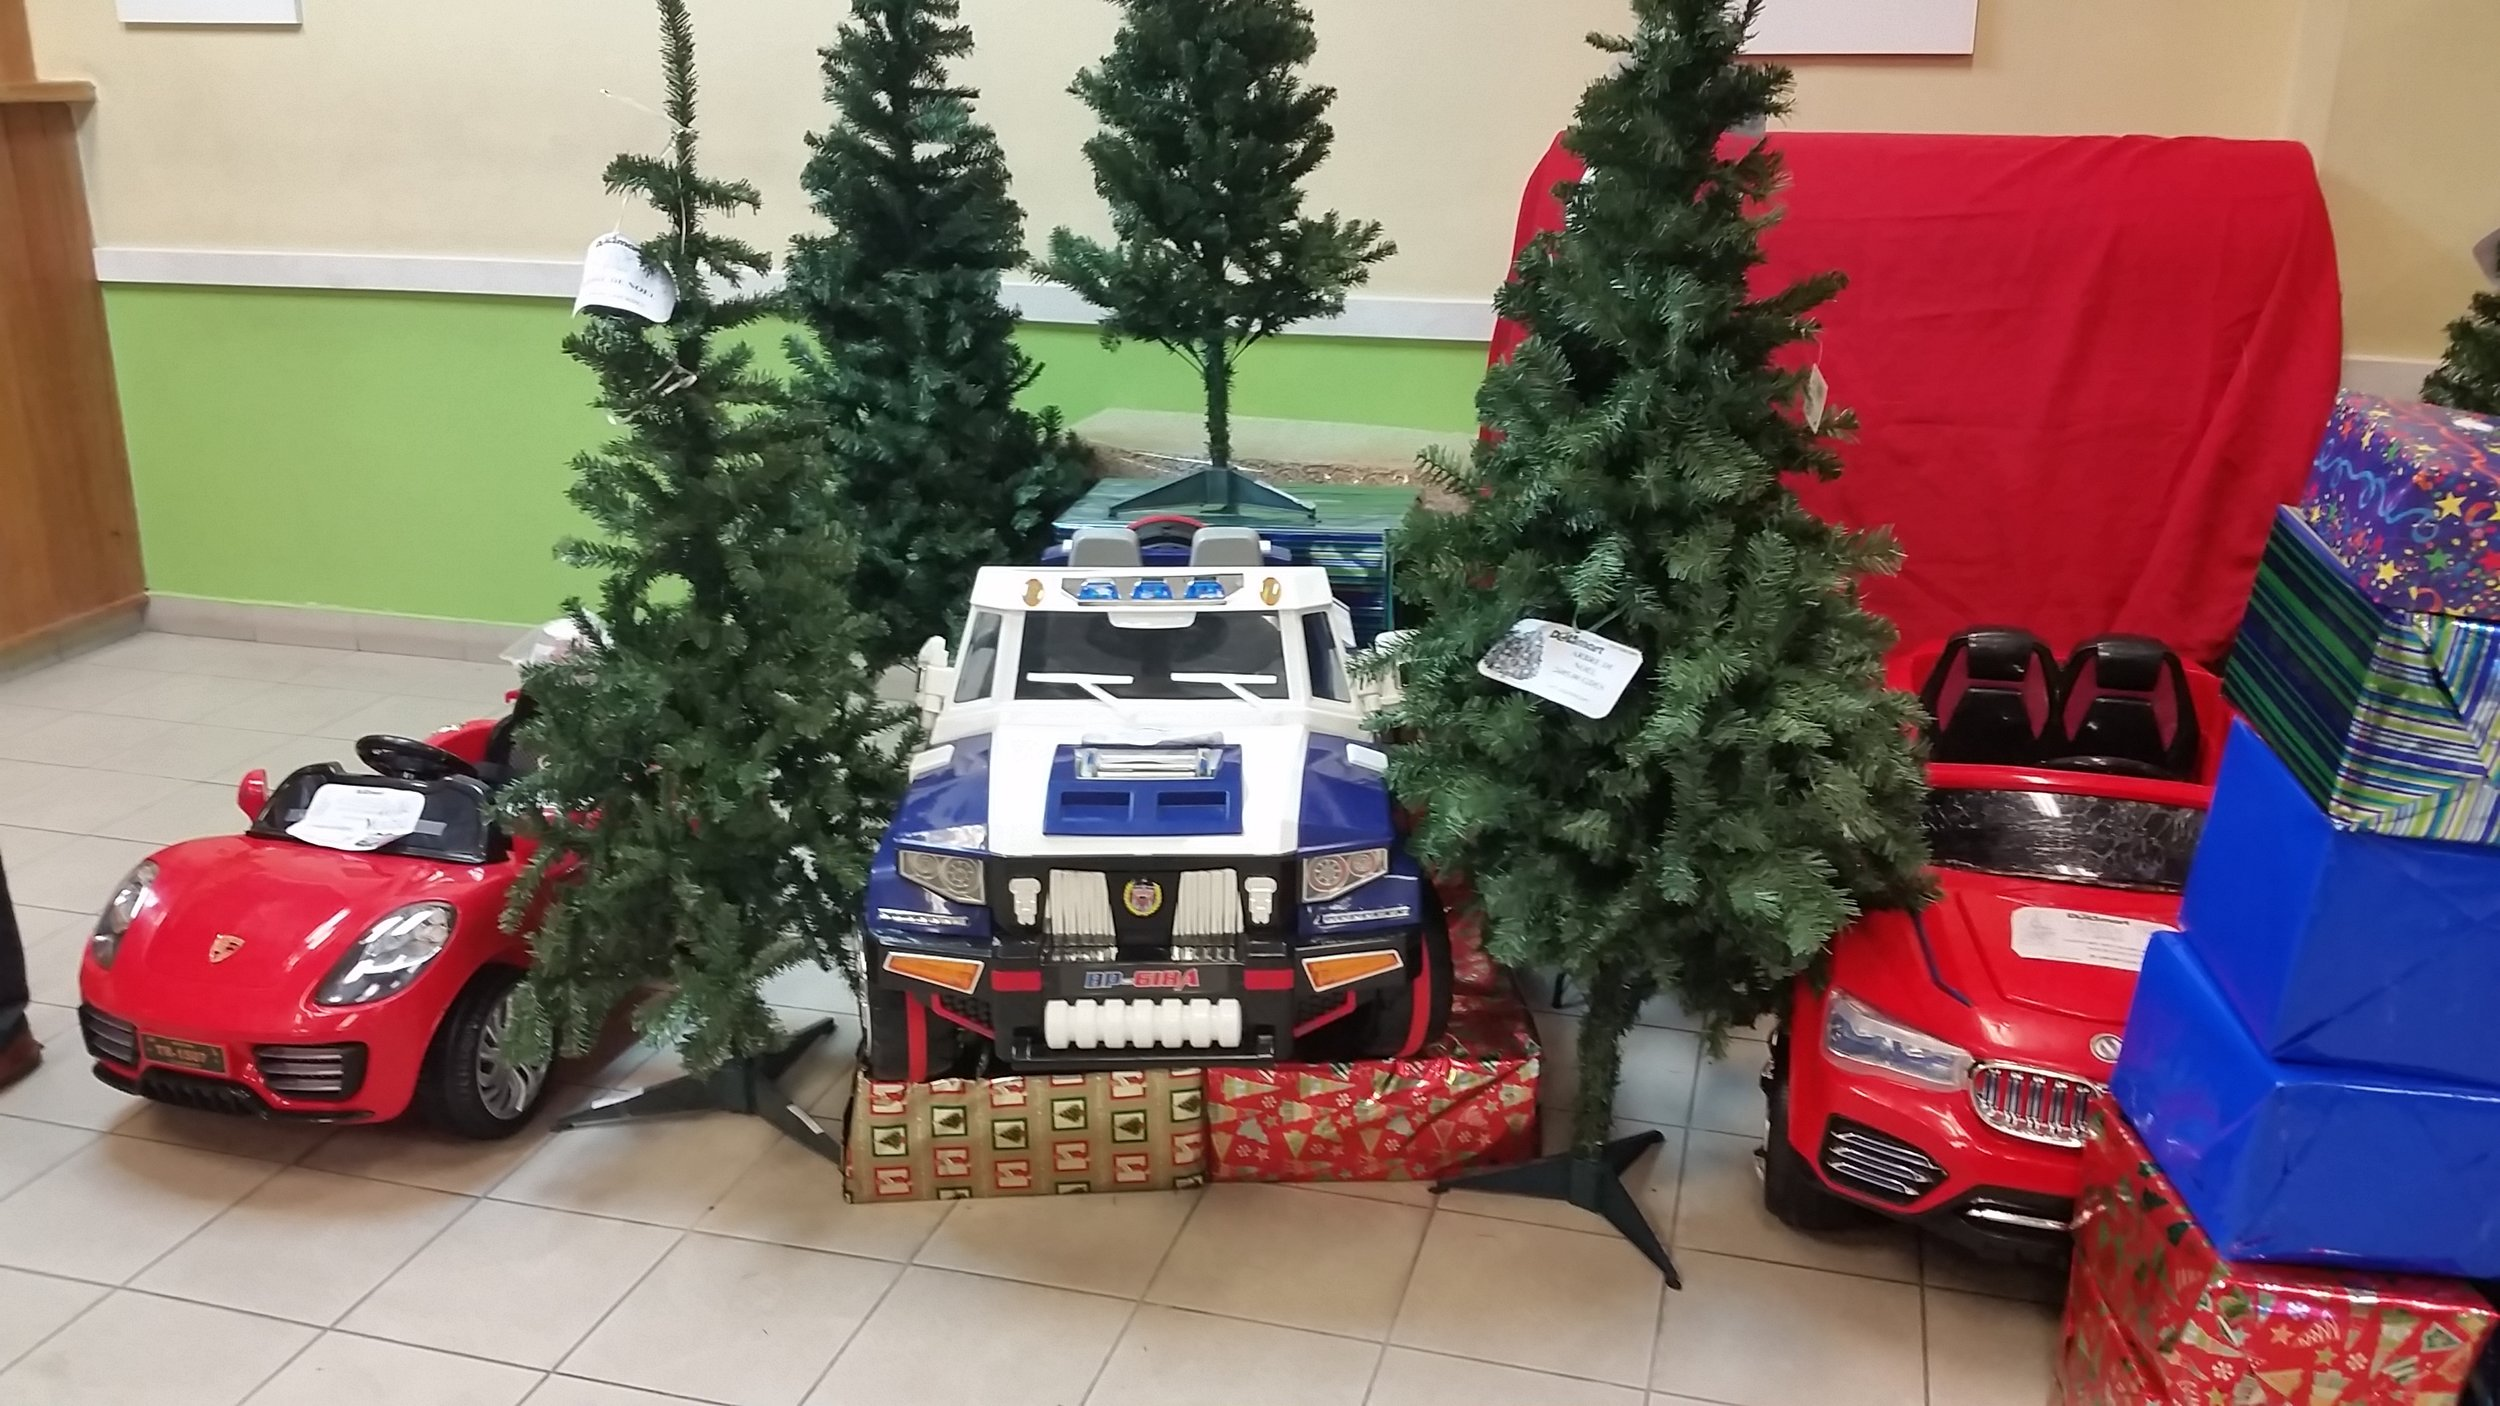 A little Christmas display at the local grocery store (the Police truck was $285 U.S.)